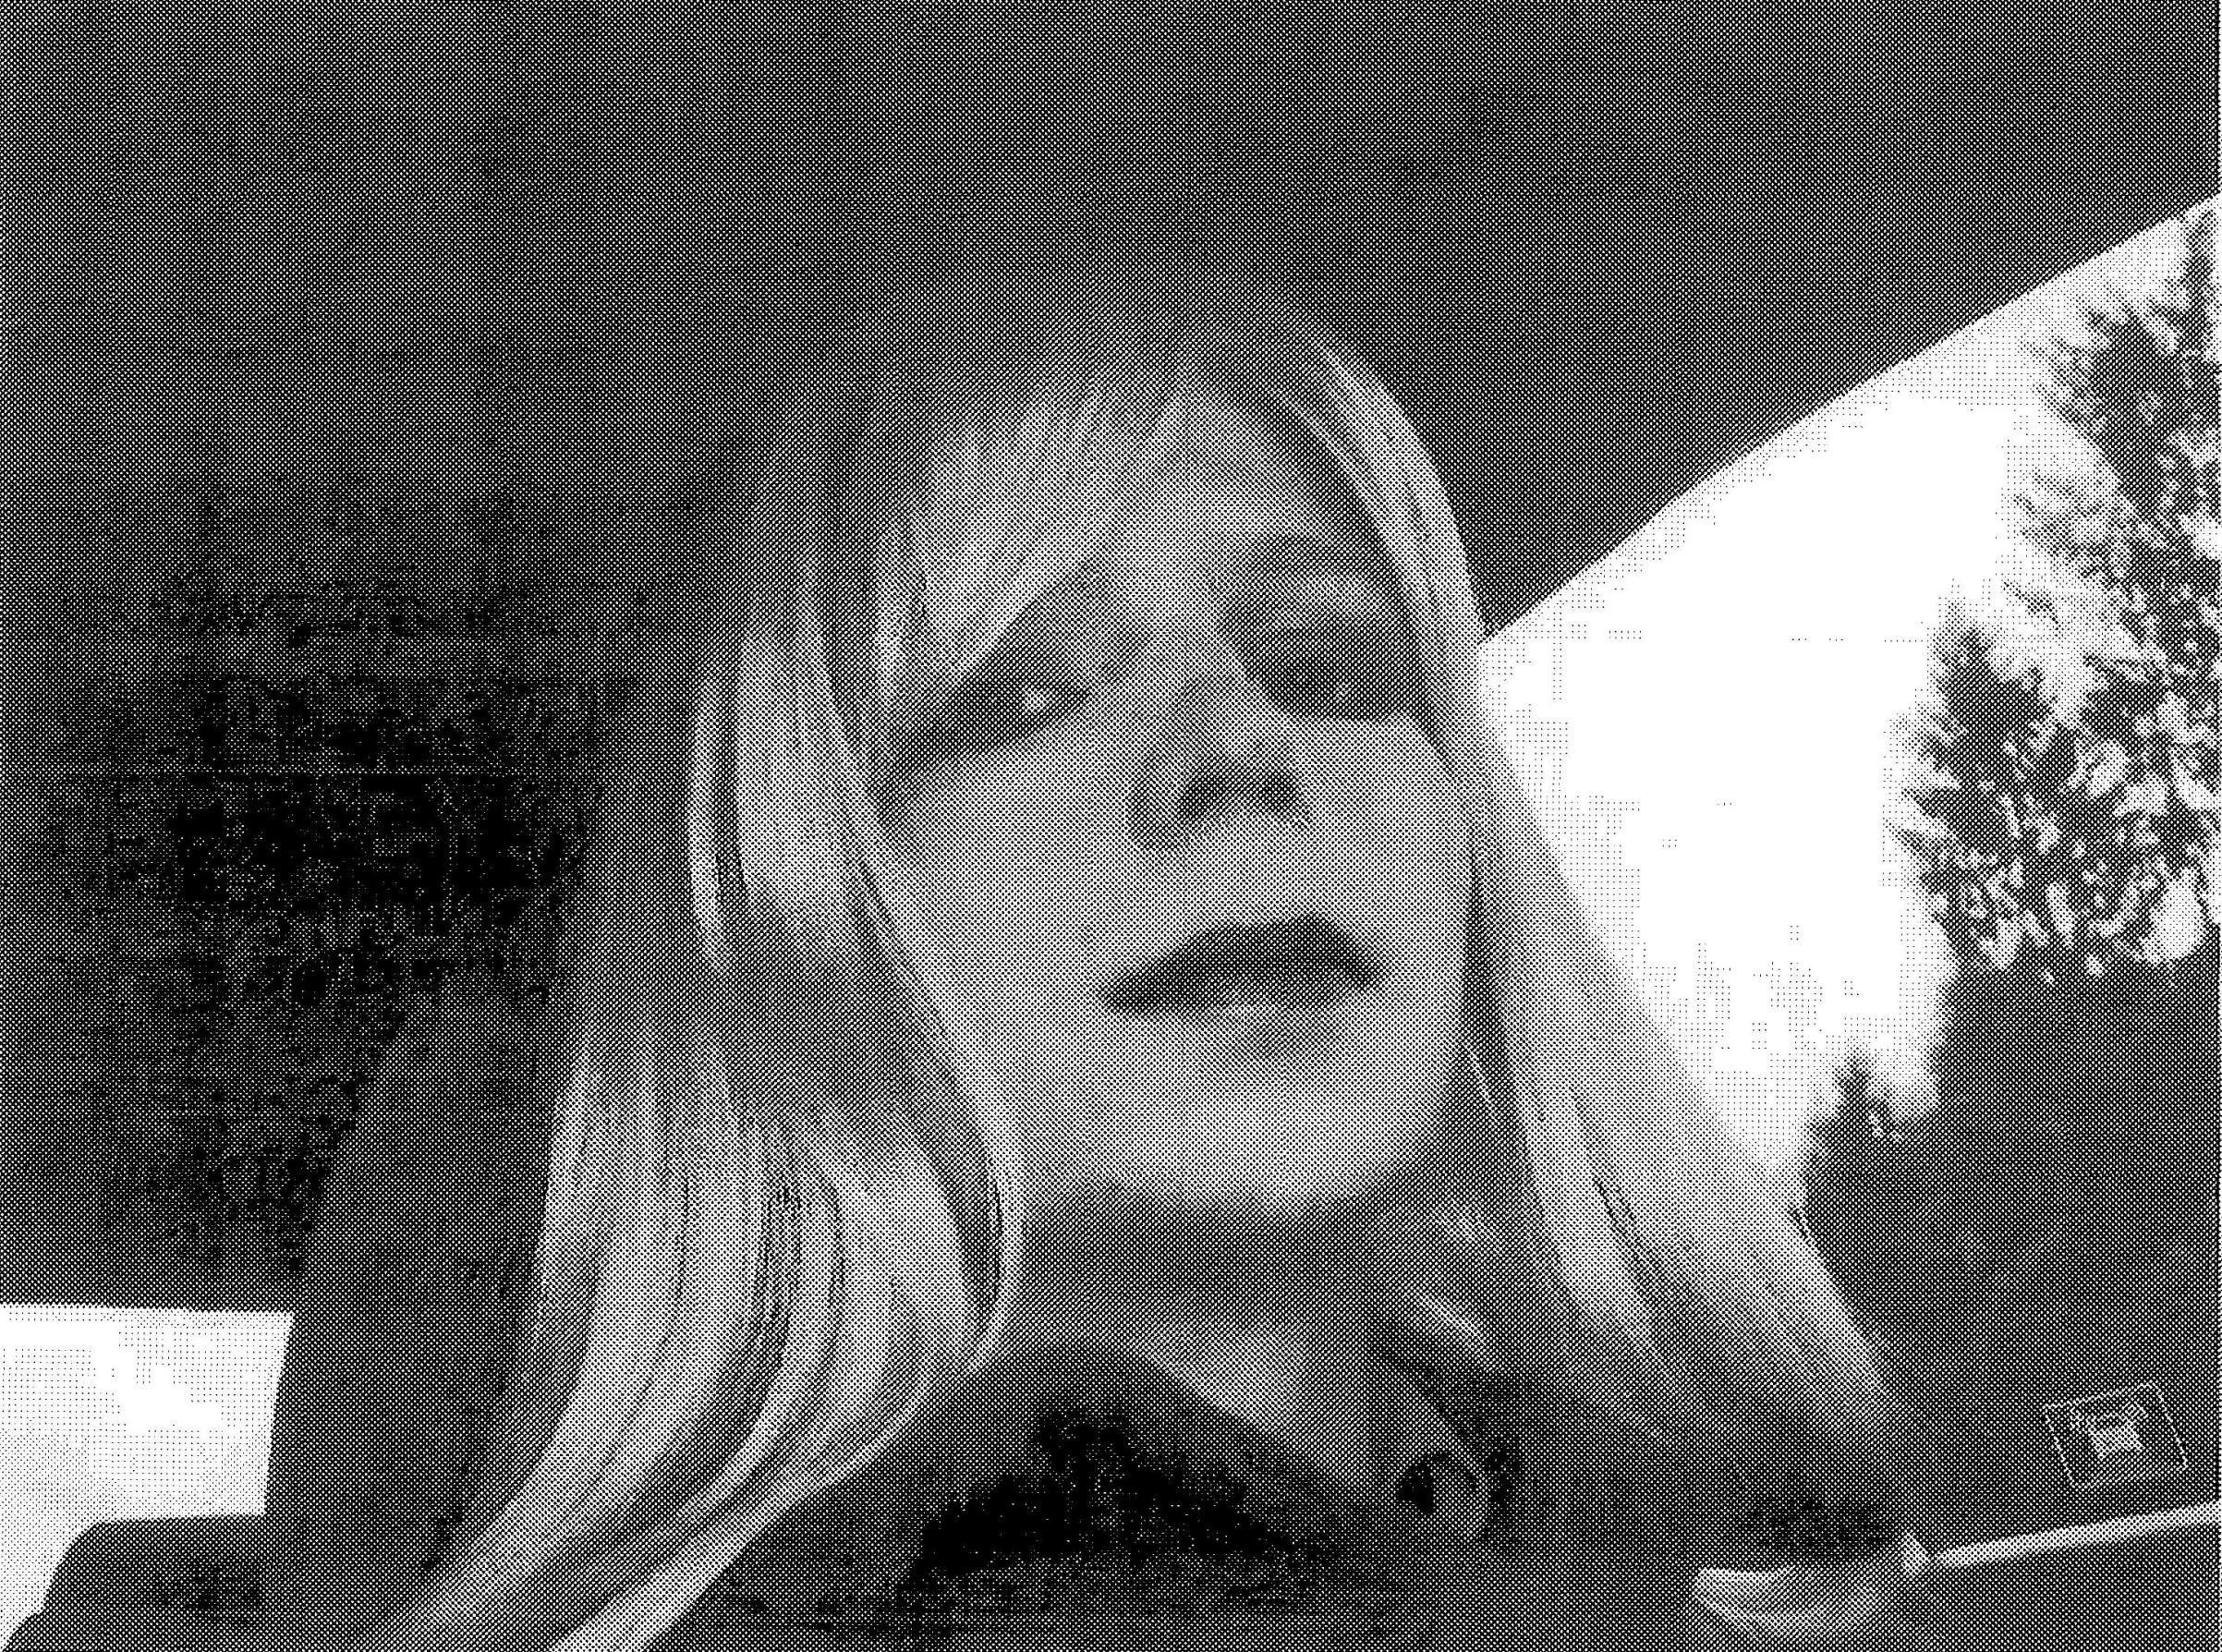 Slide 1 of 12: U.S. soldier Chelsea Manning, who was born male but identifies as a woman, imprisoned for handing over classified files to pro-transparency site WikiLeaks, is pictured dressed as a woman in this 2010 photograph obtained on August 14, 2013.Courtesy U.S. Army/Handout via REUTERS  A